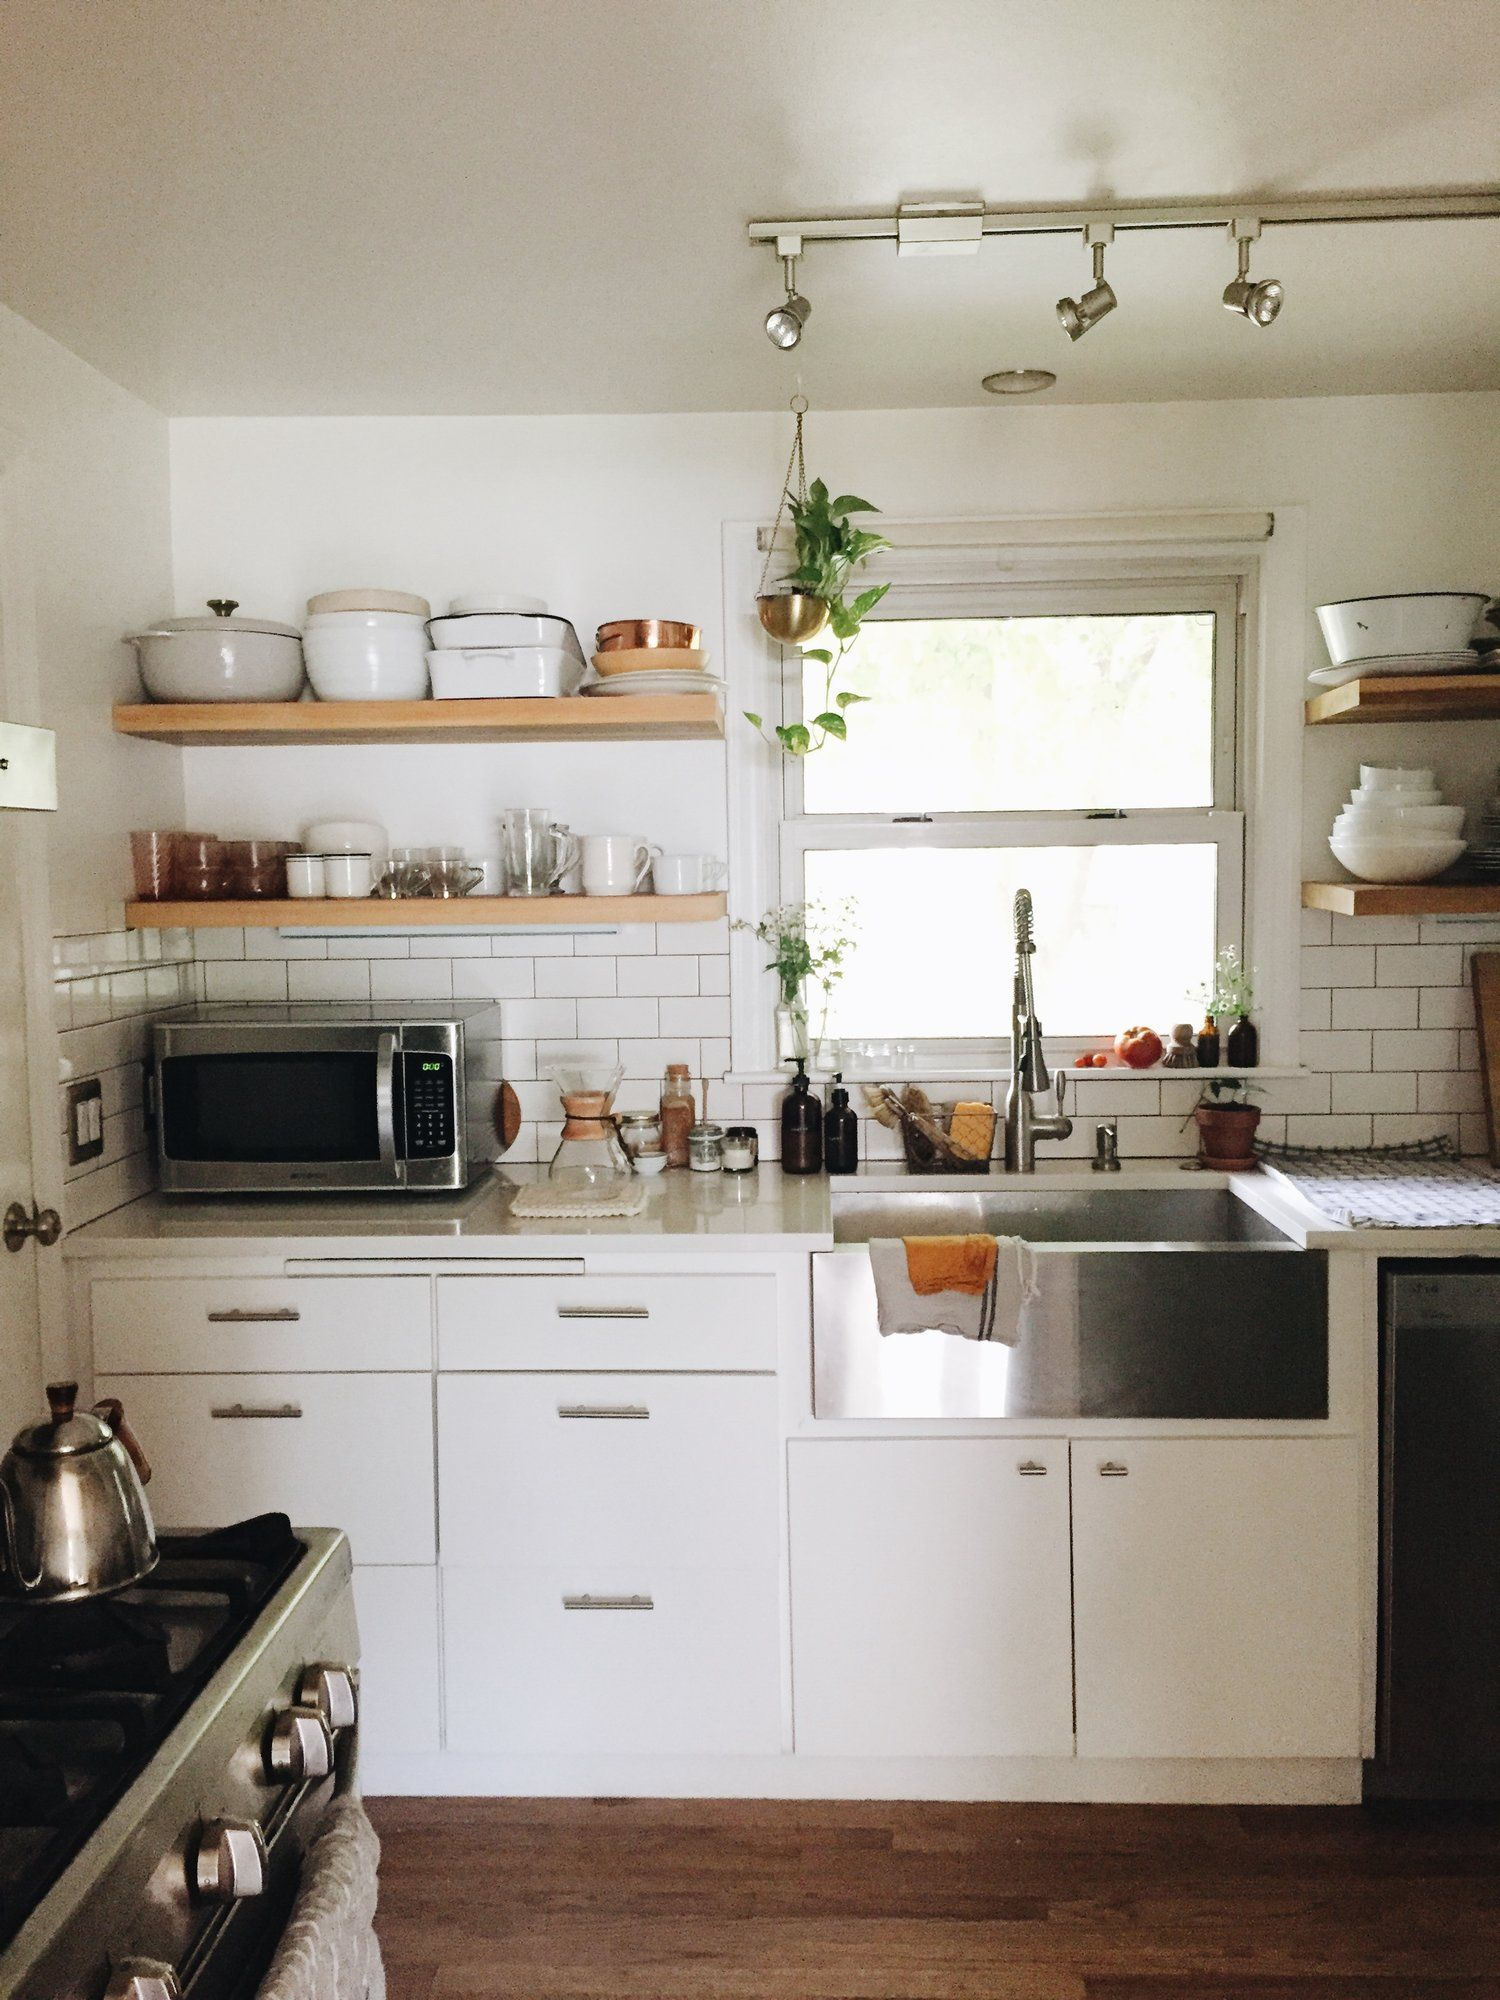 HOME TOUR: BEV WEIDNER | Minimalist, Flats and Flat ideas